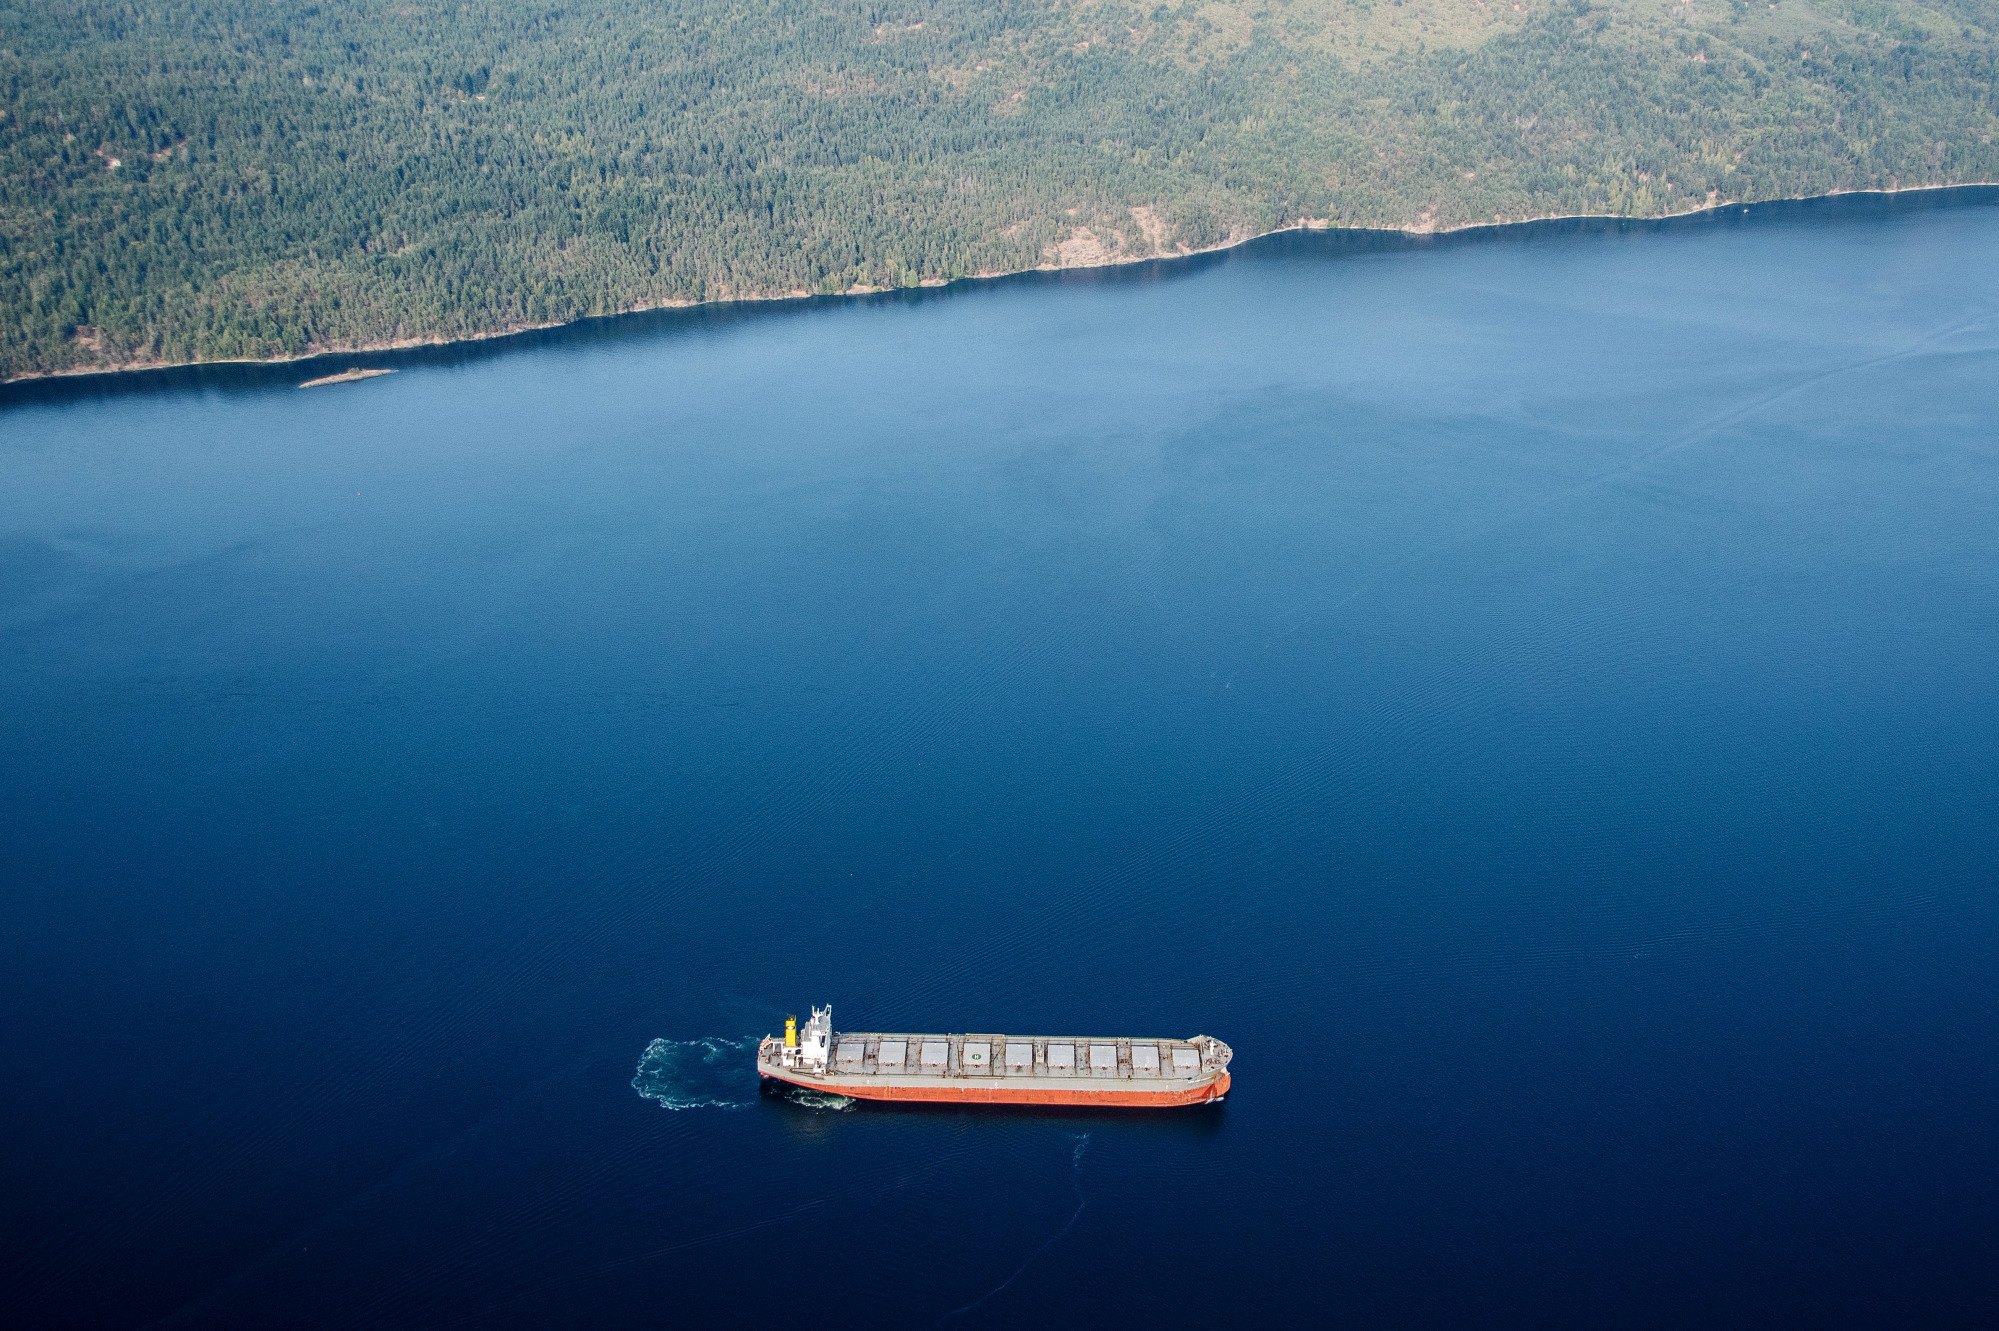 A tanker ship sits anchored in this aerial photograph taken above Saanich Inlet, British Columbia, Canada, on Sunday, Aug. 12, 2018. Canada is scheduled to release its second-quarter gross domestic product (GDP) figures on August 30. Photographer: James MacDonald/Bloomberg